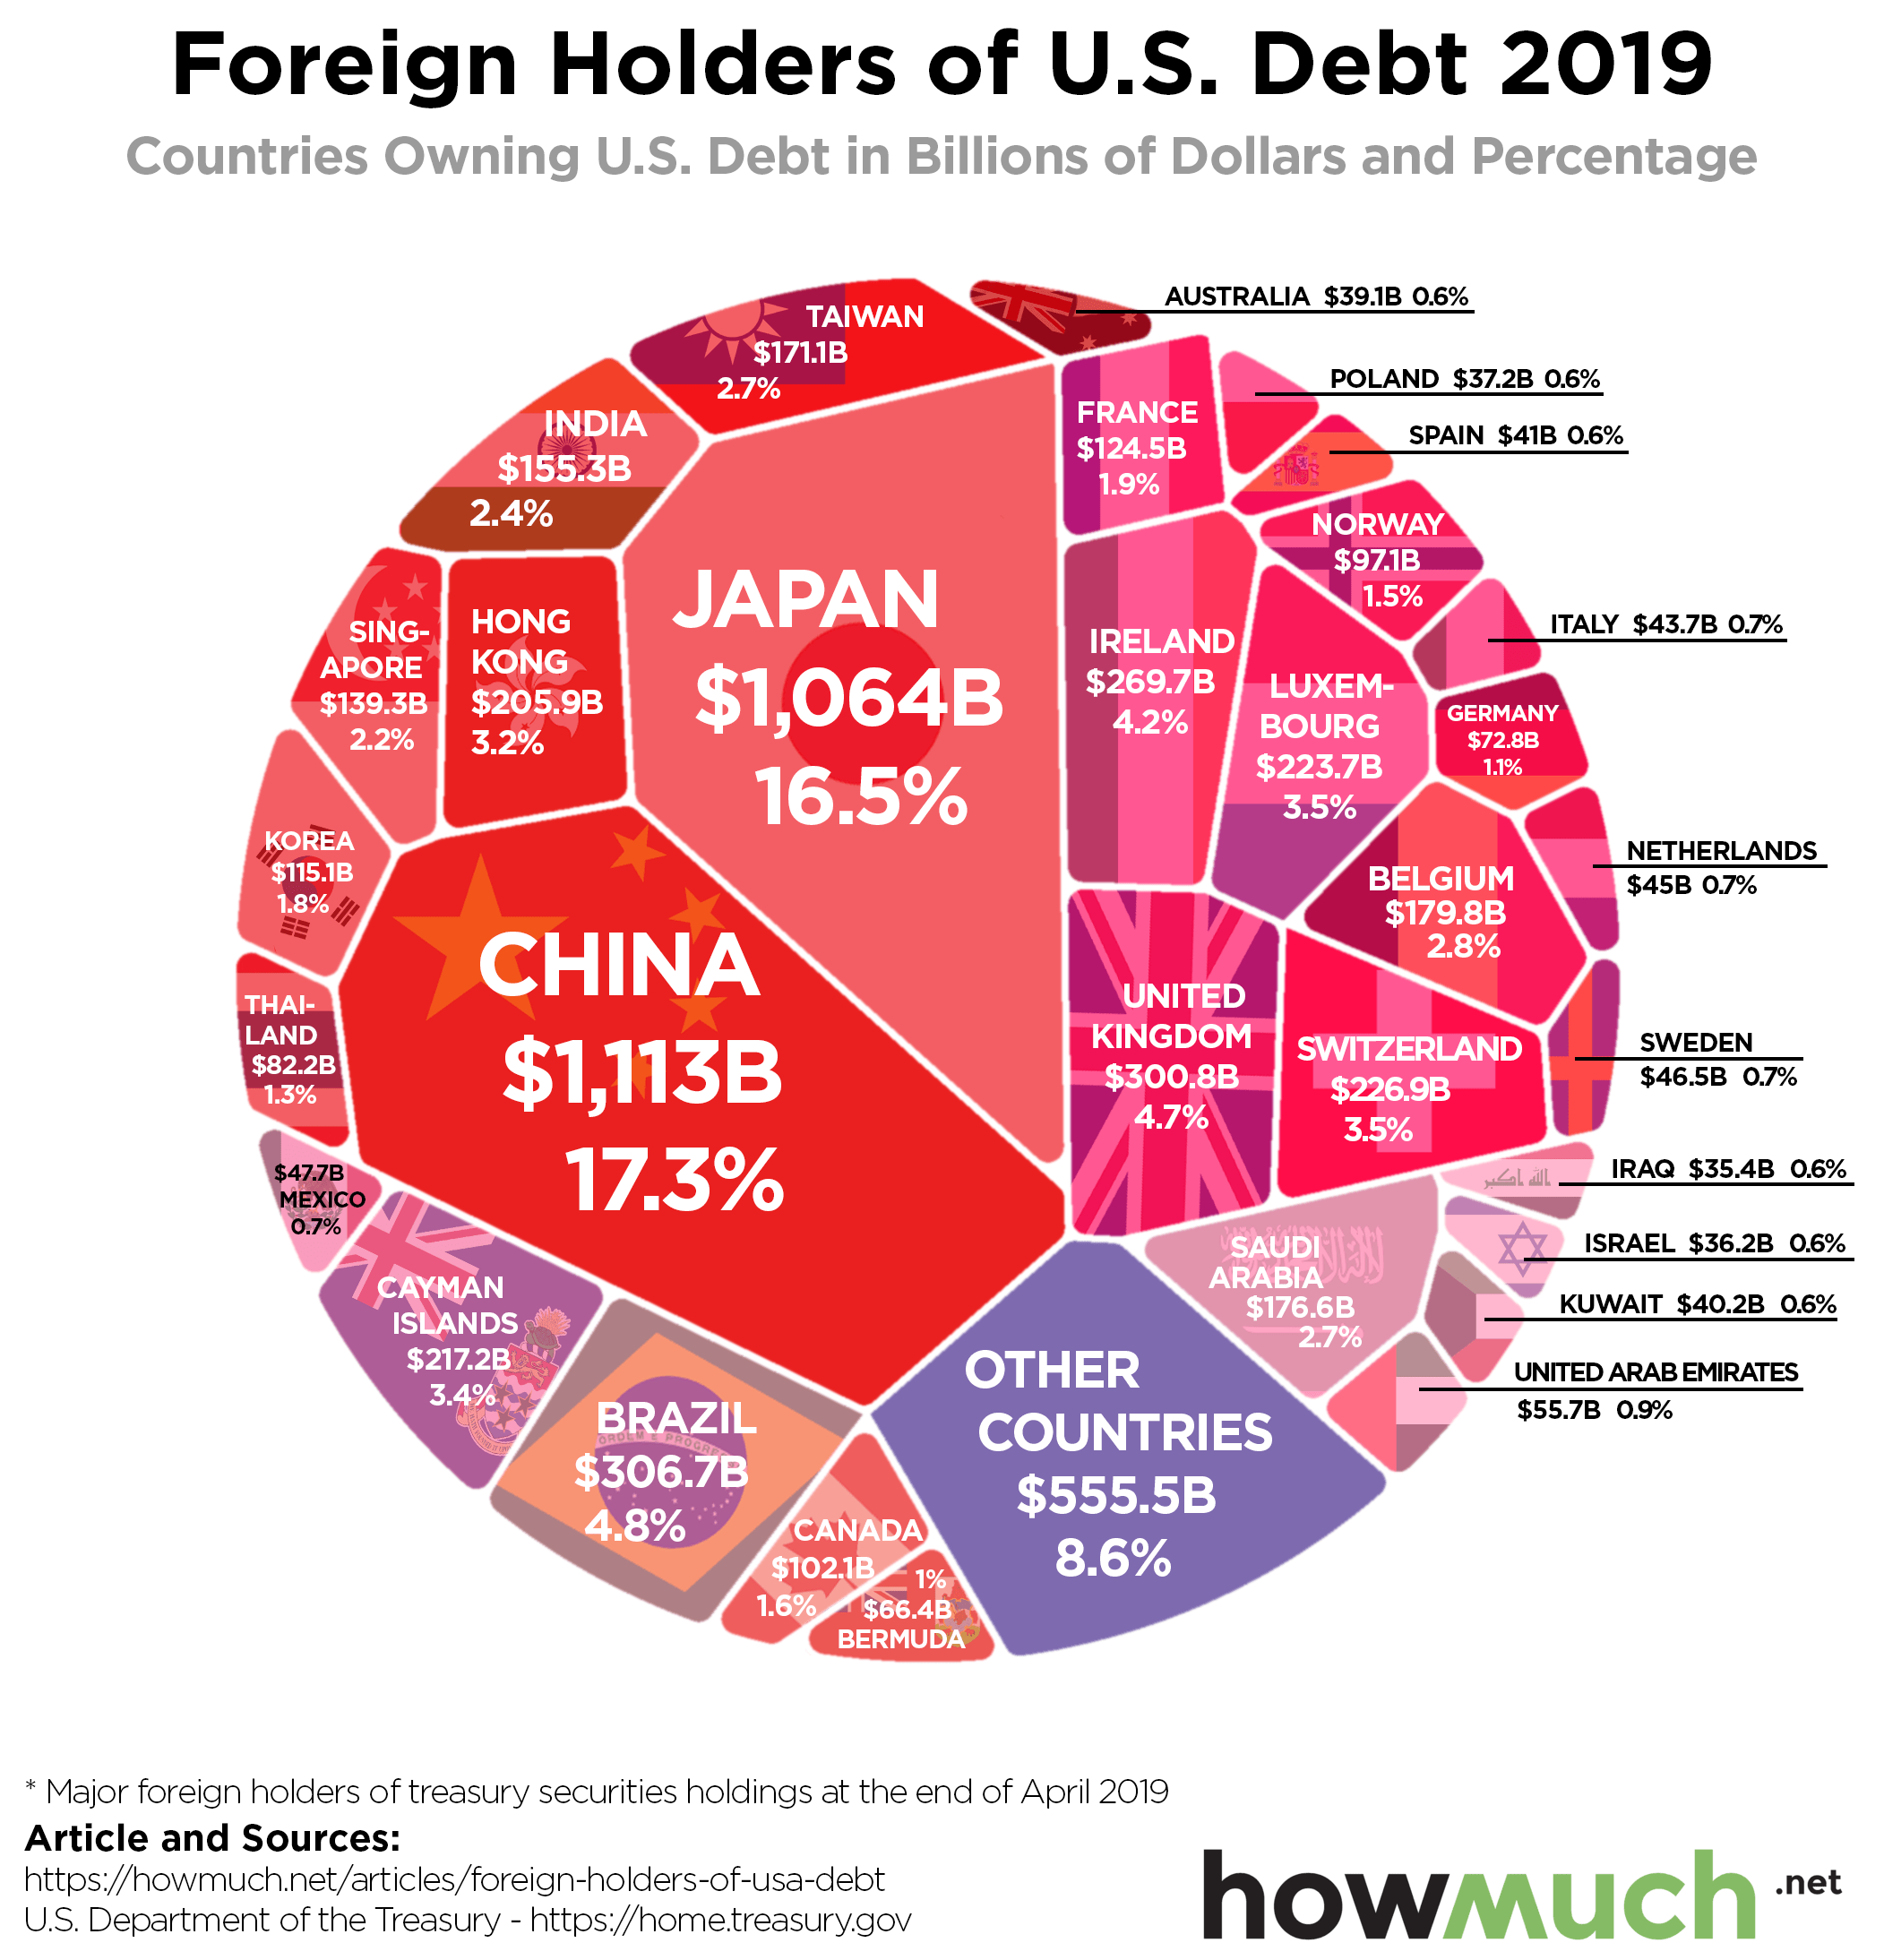 Foreign Holders of U.S. Debt